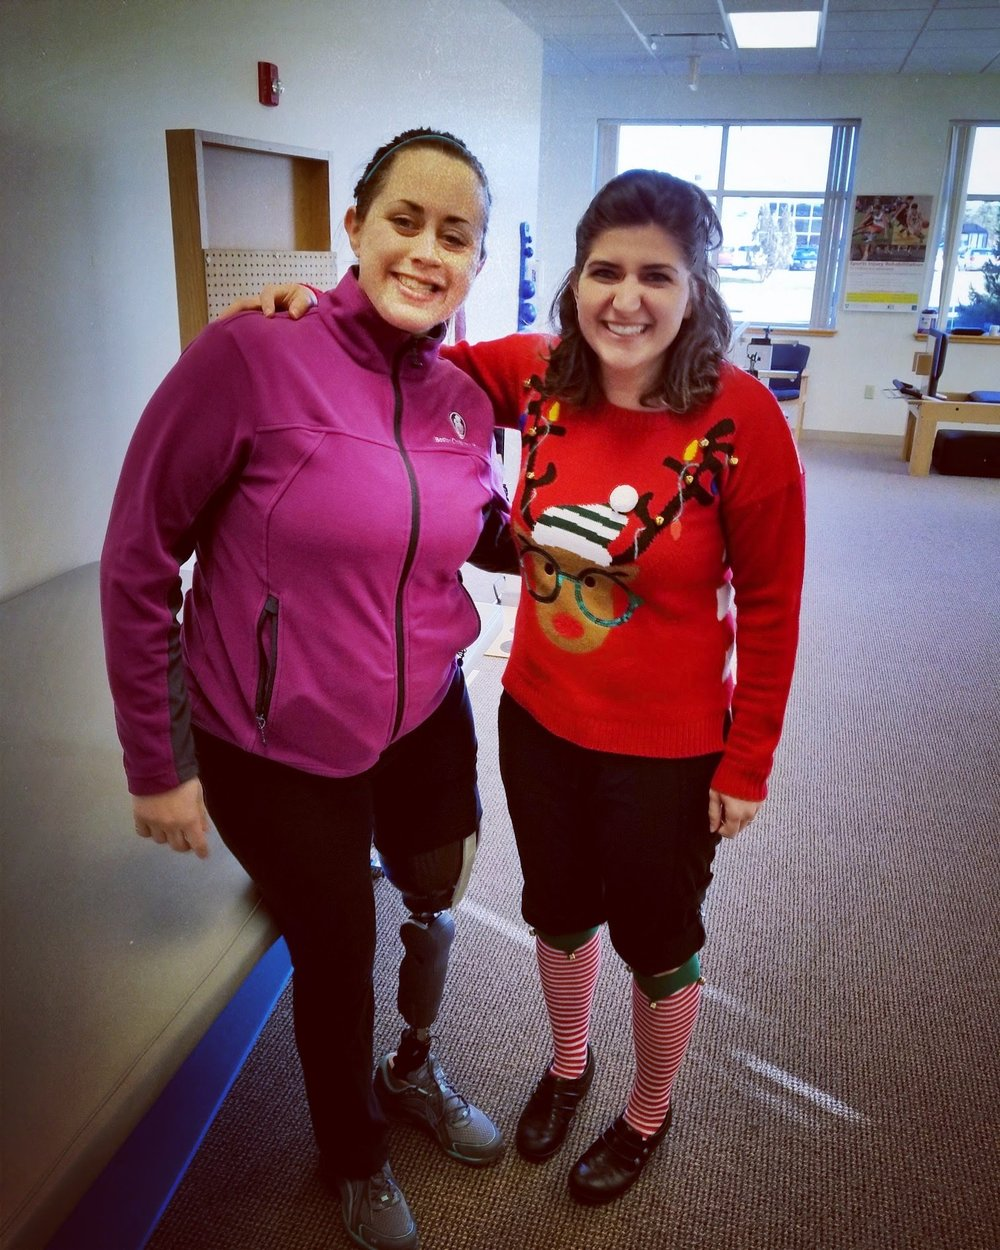 My physical therapist Dara. She's the best!